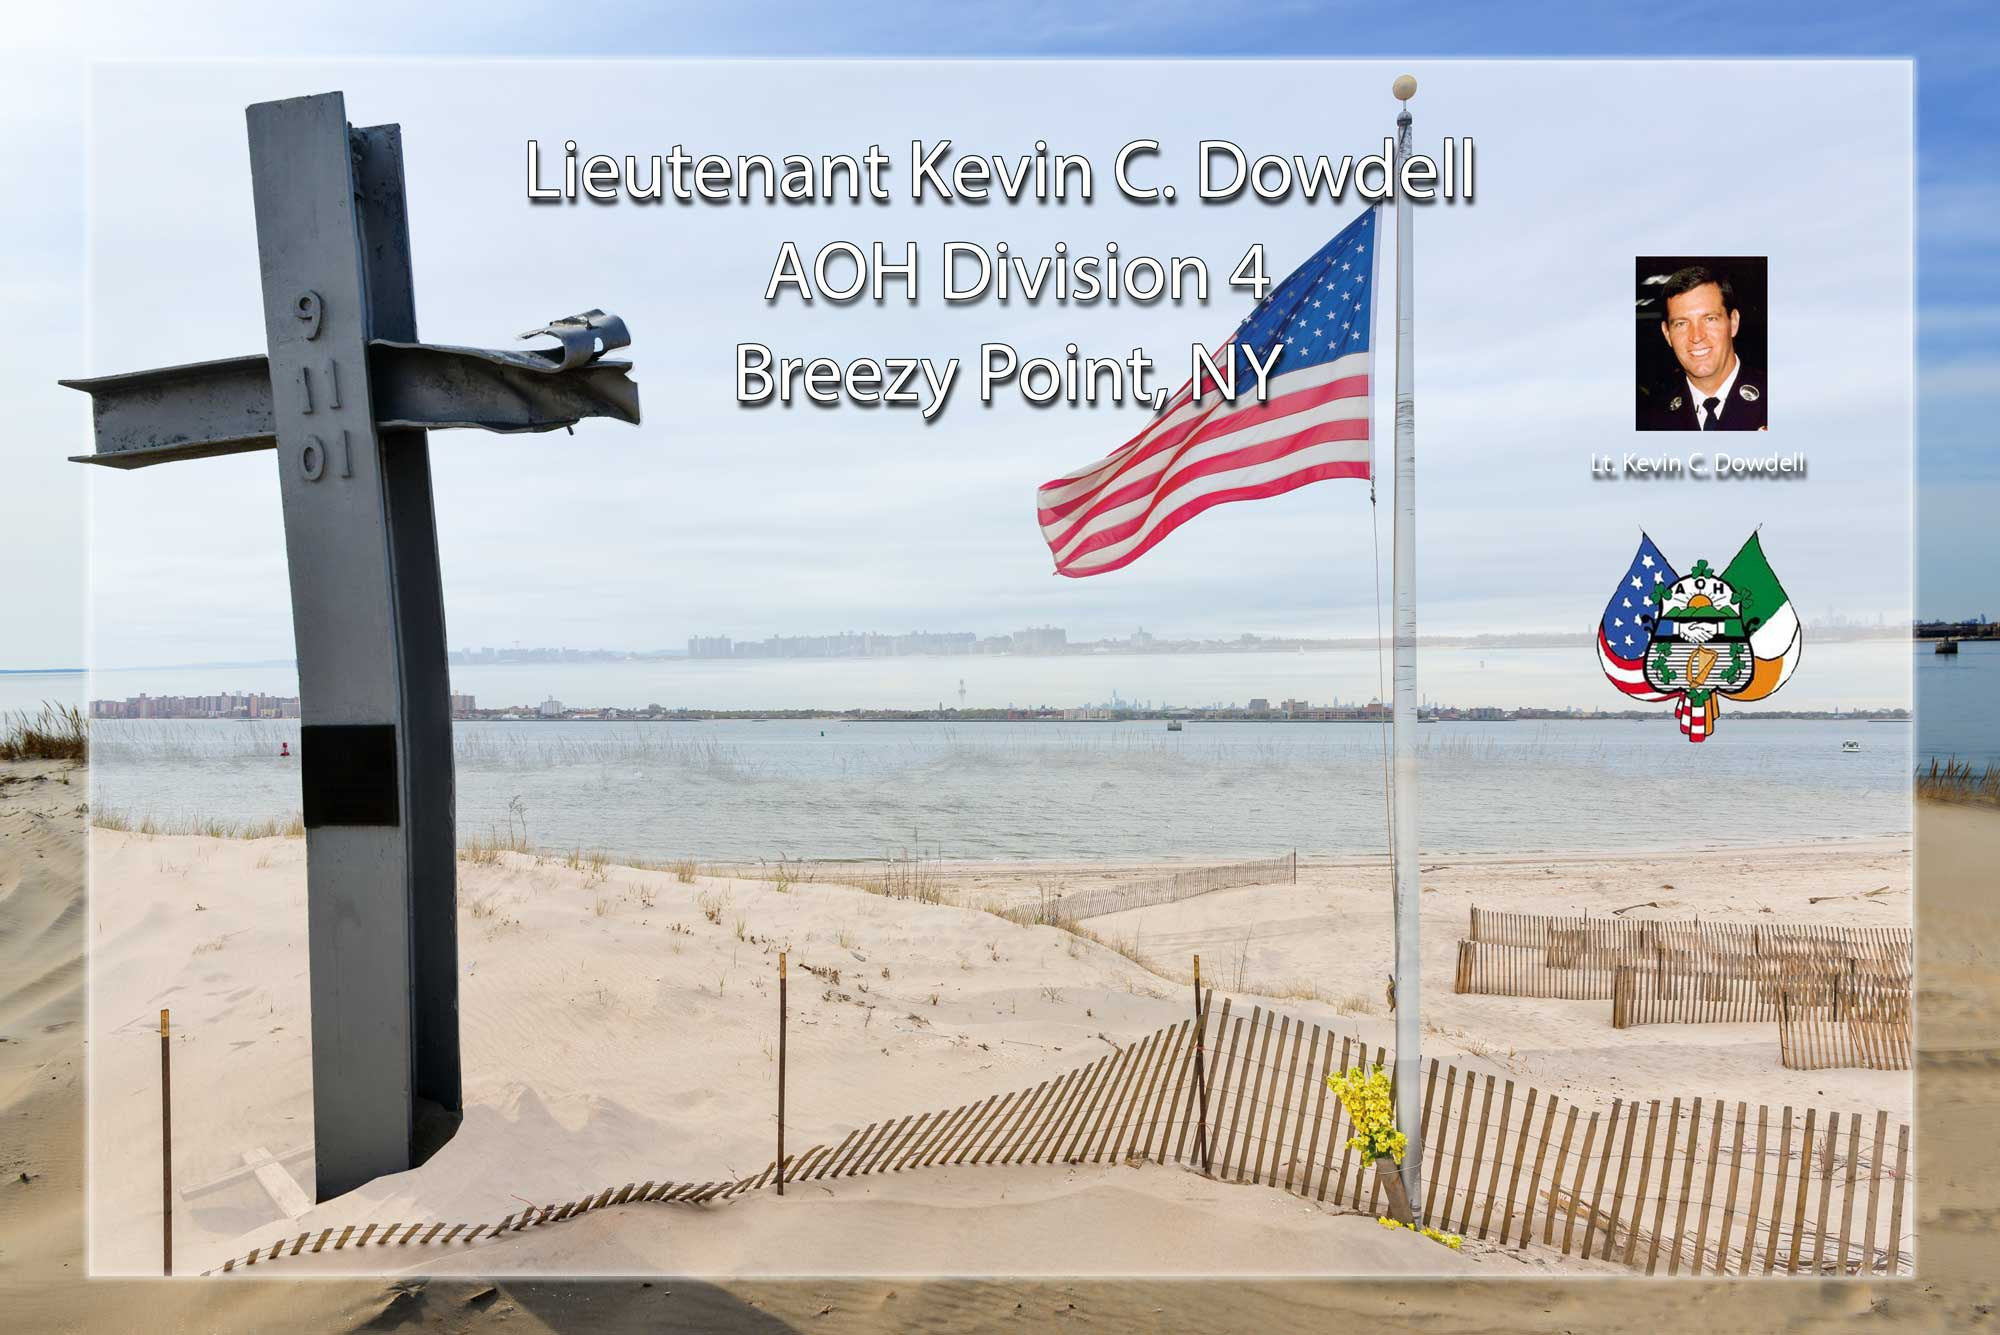 <h2></h2><div class='slide-content'><h2>Welcome to AOH Division 4 Breezy Point, NY</h2><p>This site is dedicated to the memory of Lt. Kevin C. Dowdell.</p></div><a href='https://aohbpny.org/aoh-bpny/lt-kevin-c-dowdell/' class='btn' title='Read more'>Read more</a>